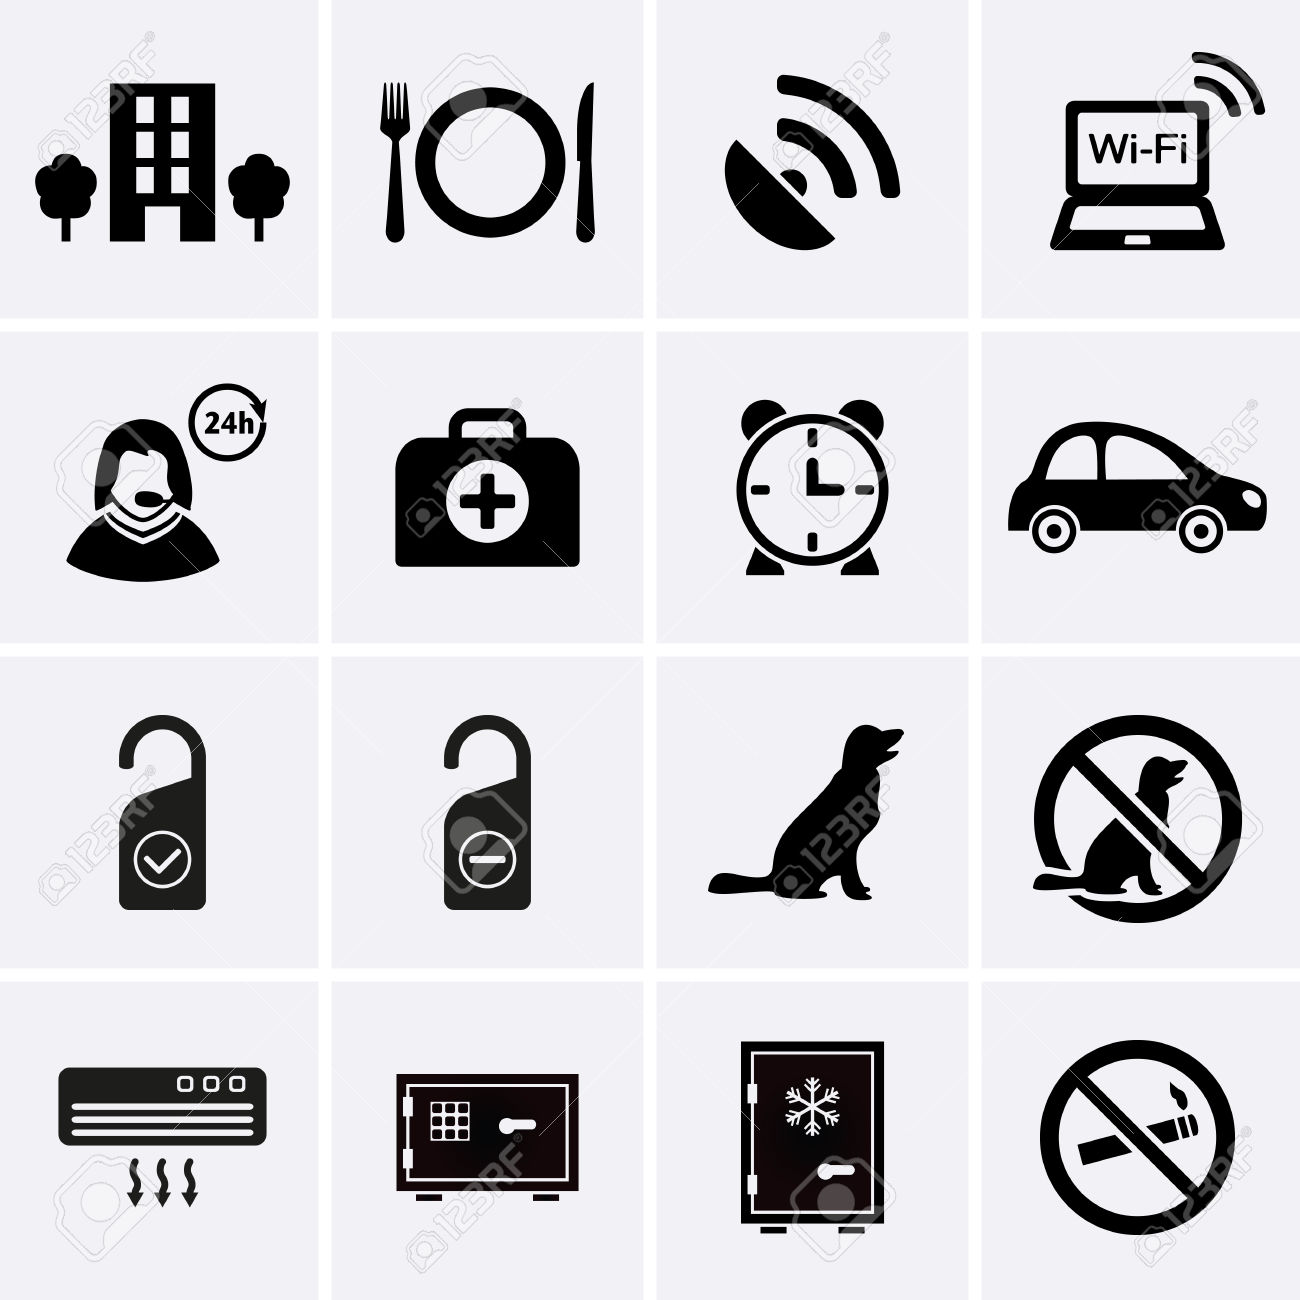 Hotel Services And Facilities Icons Set 2 Vector